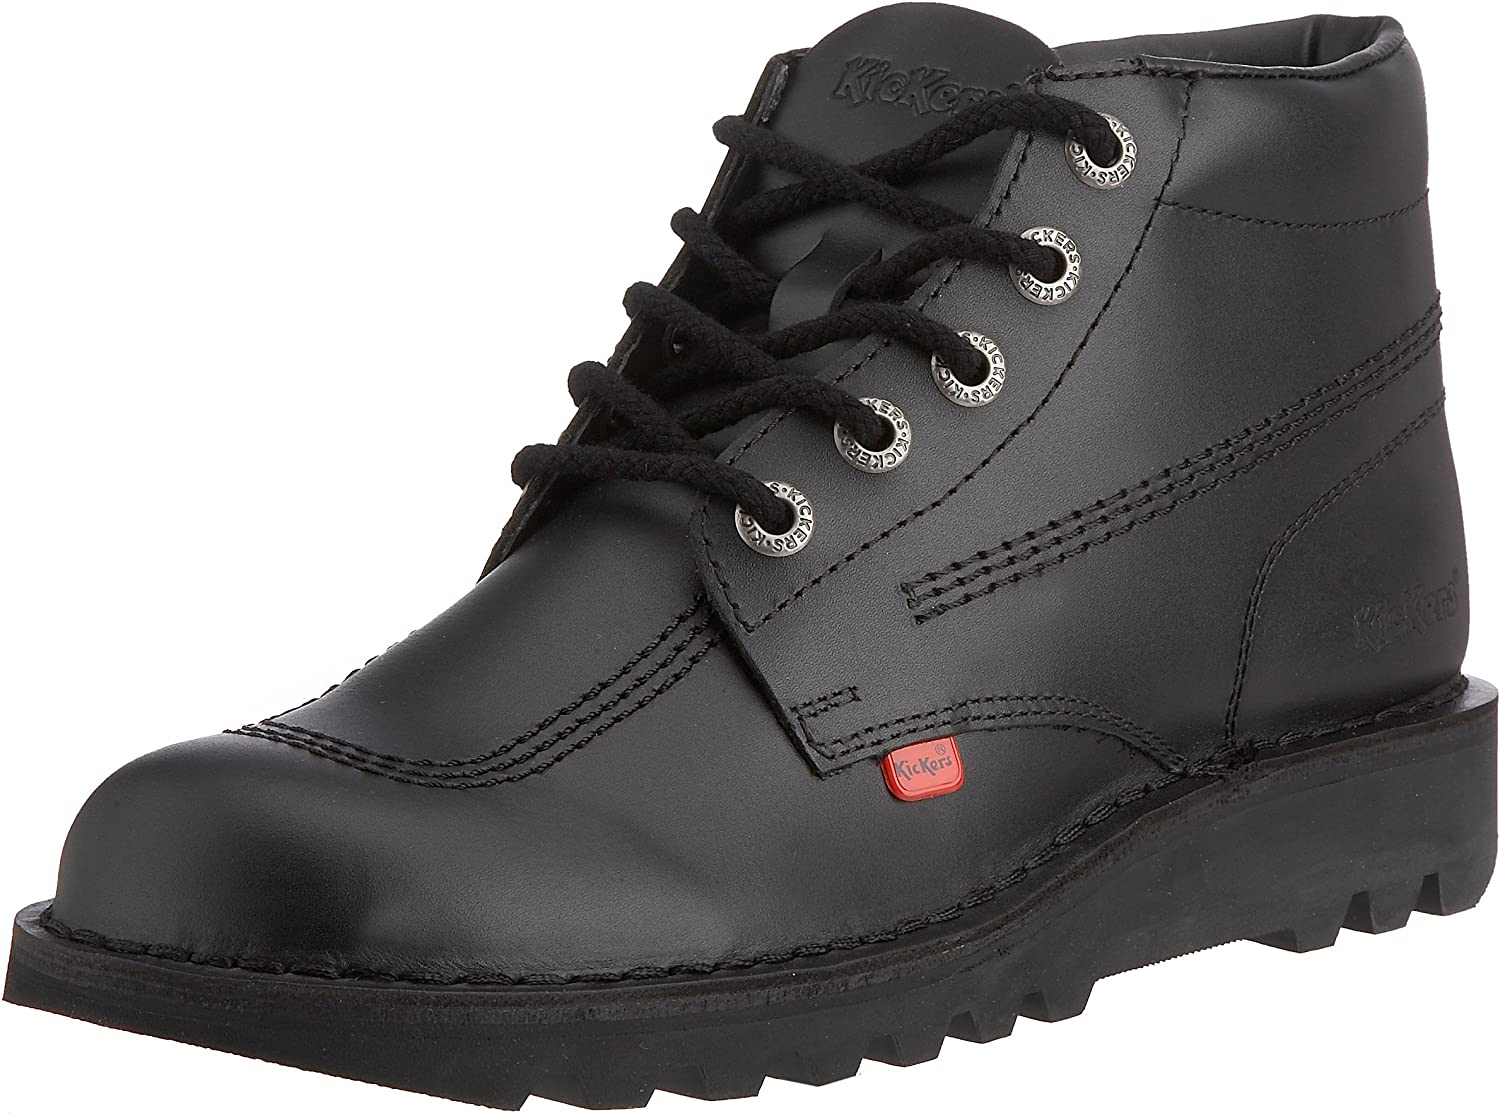 Core Hi Kick Mens Kickers Black Leather EU 45 shoes